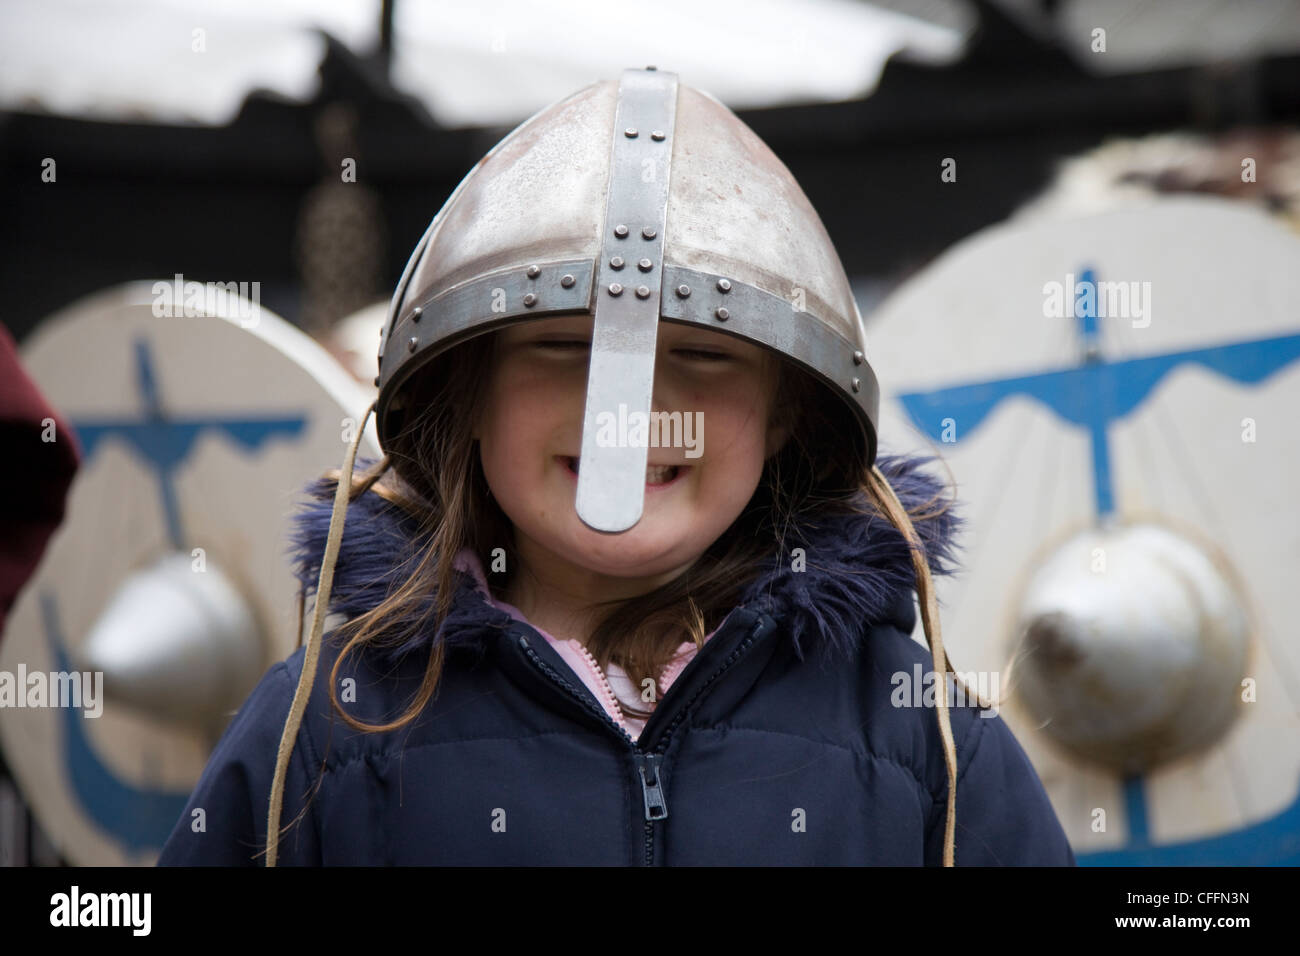 Girl dressed up as a viking warrior with sword, helmet and shield outside the Jorvik Centre in York - Stock Image